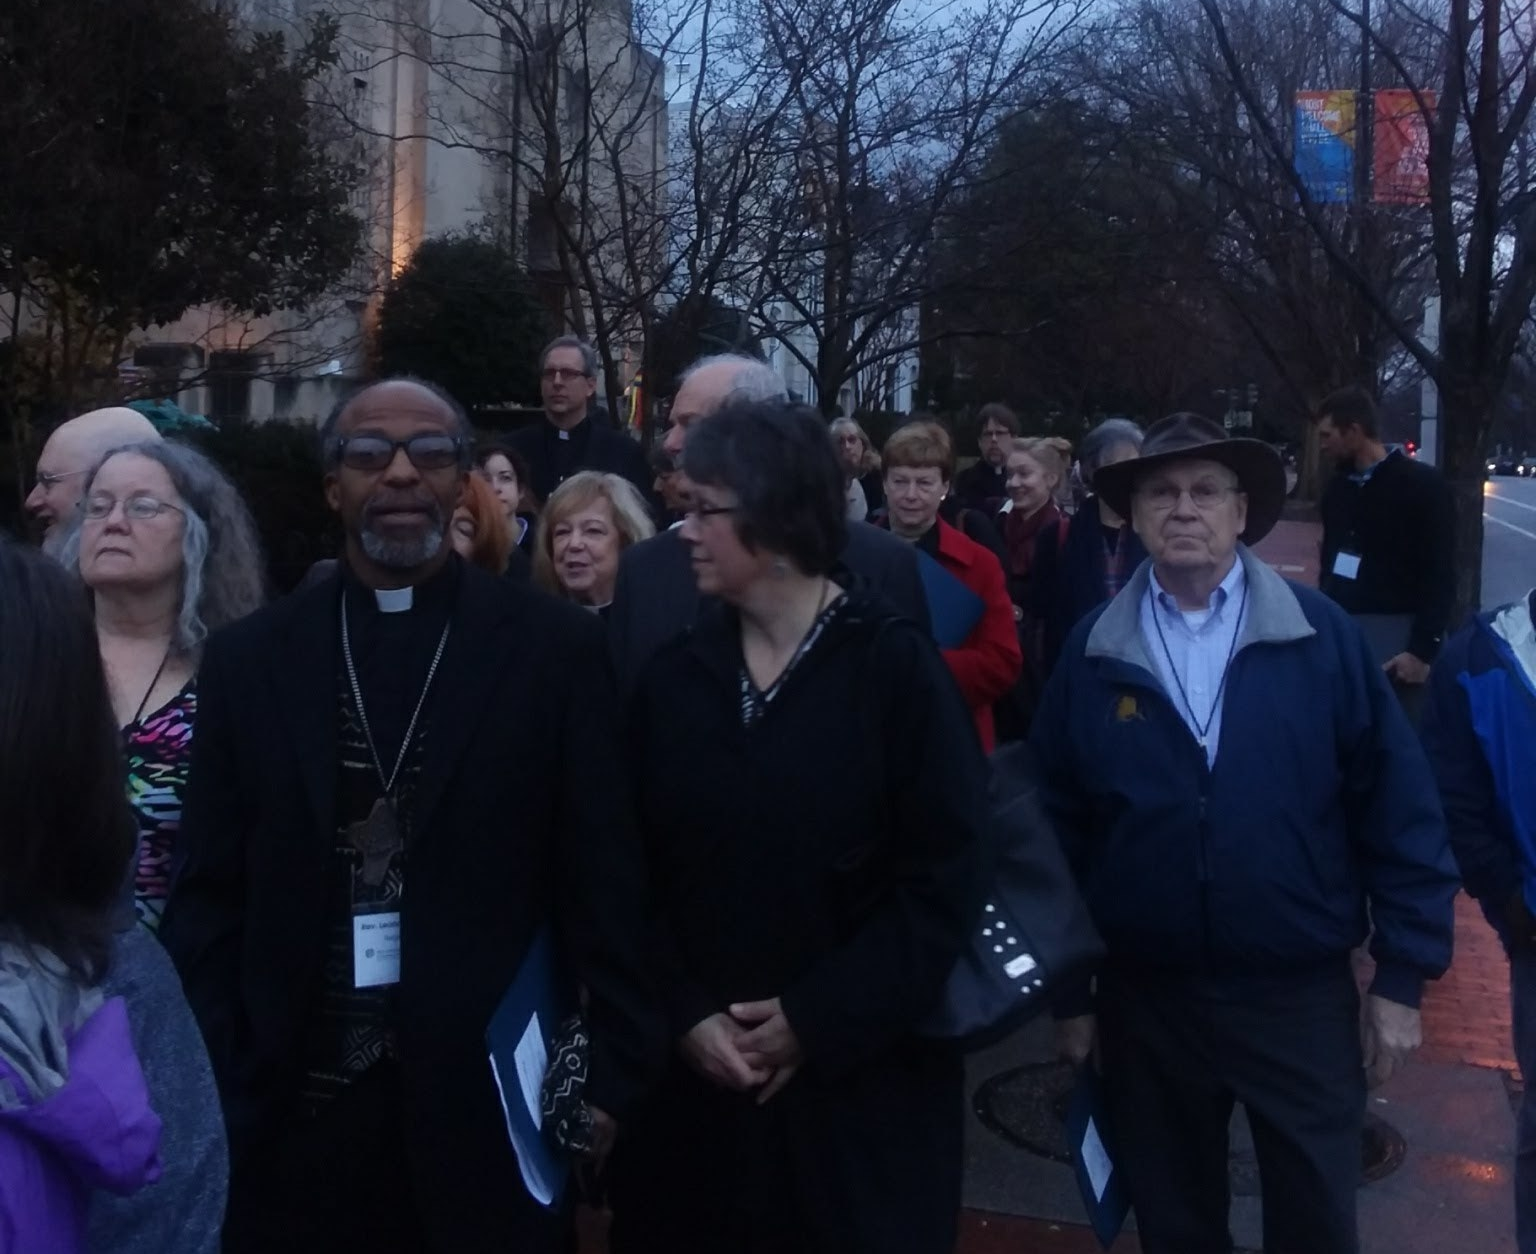 Lutheran hunger leaders march to the Capitol to begin their advocacy day on the Farm Bill.